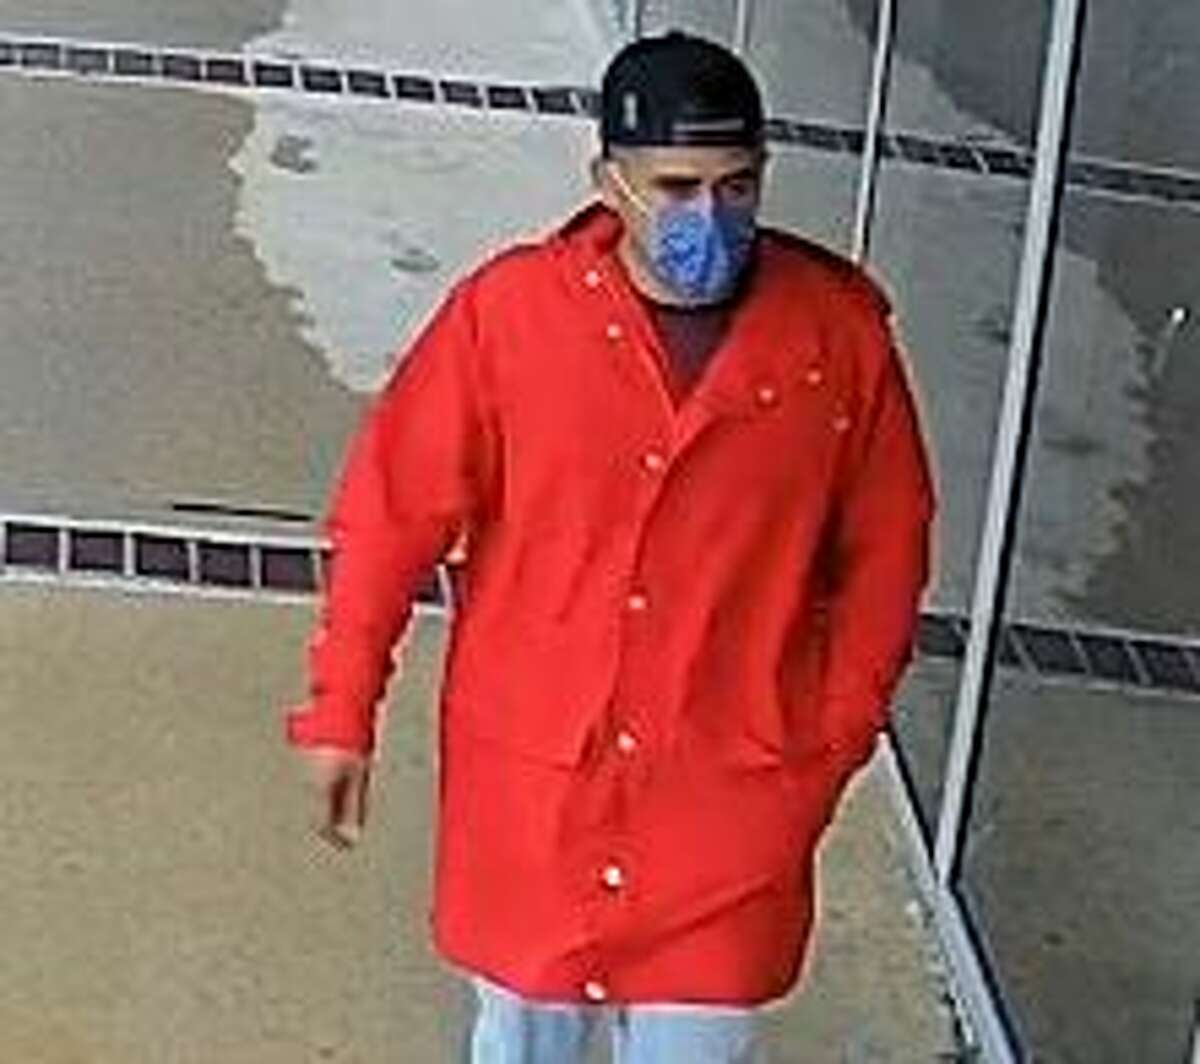 """A $5,000 reward is being offered for information leading to the identification and arrest of an alleged Houston bank robber authorities are calling the """"Little Red Riding Crook."""""""